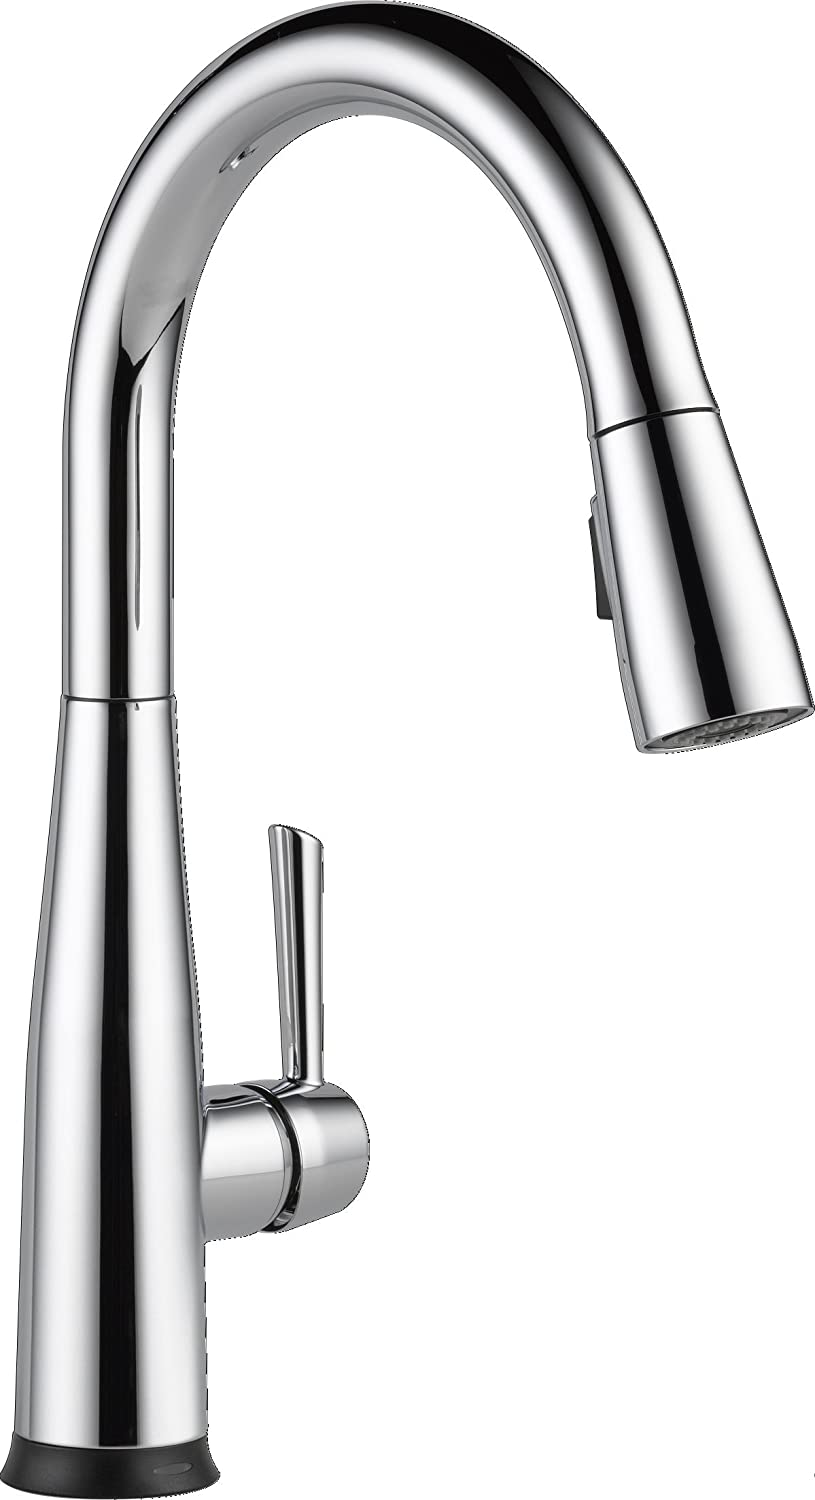 Delta Faucet 9113t Dst Essa Single Handle Pull Down Kitchen Faucet